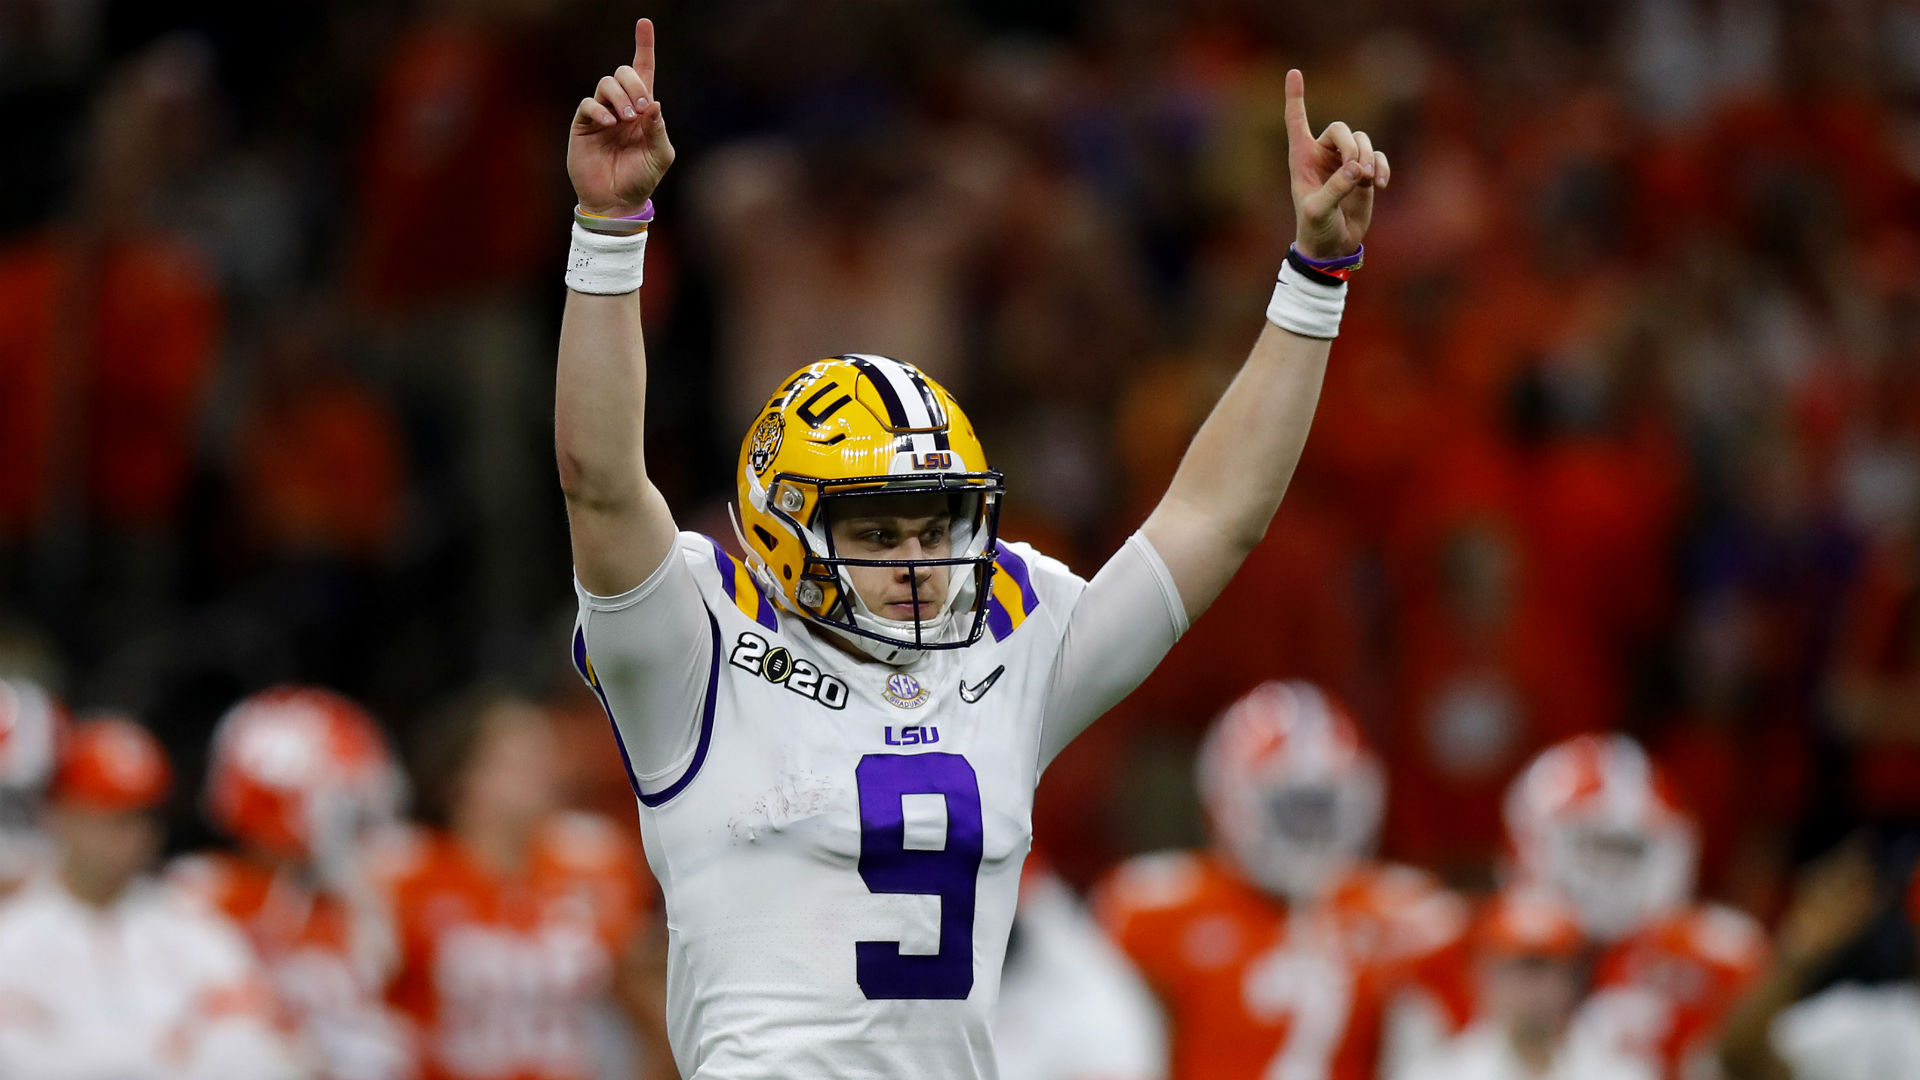 LSU's National Championship win over Clemson saw Joe Burrow achieve a dream he has had since the age of five.